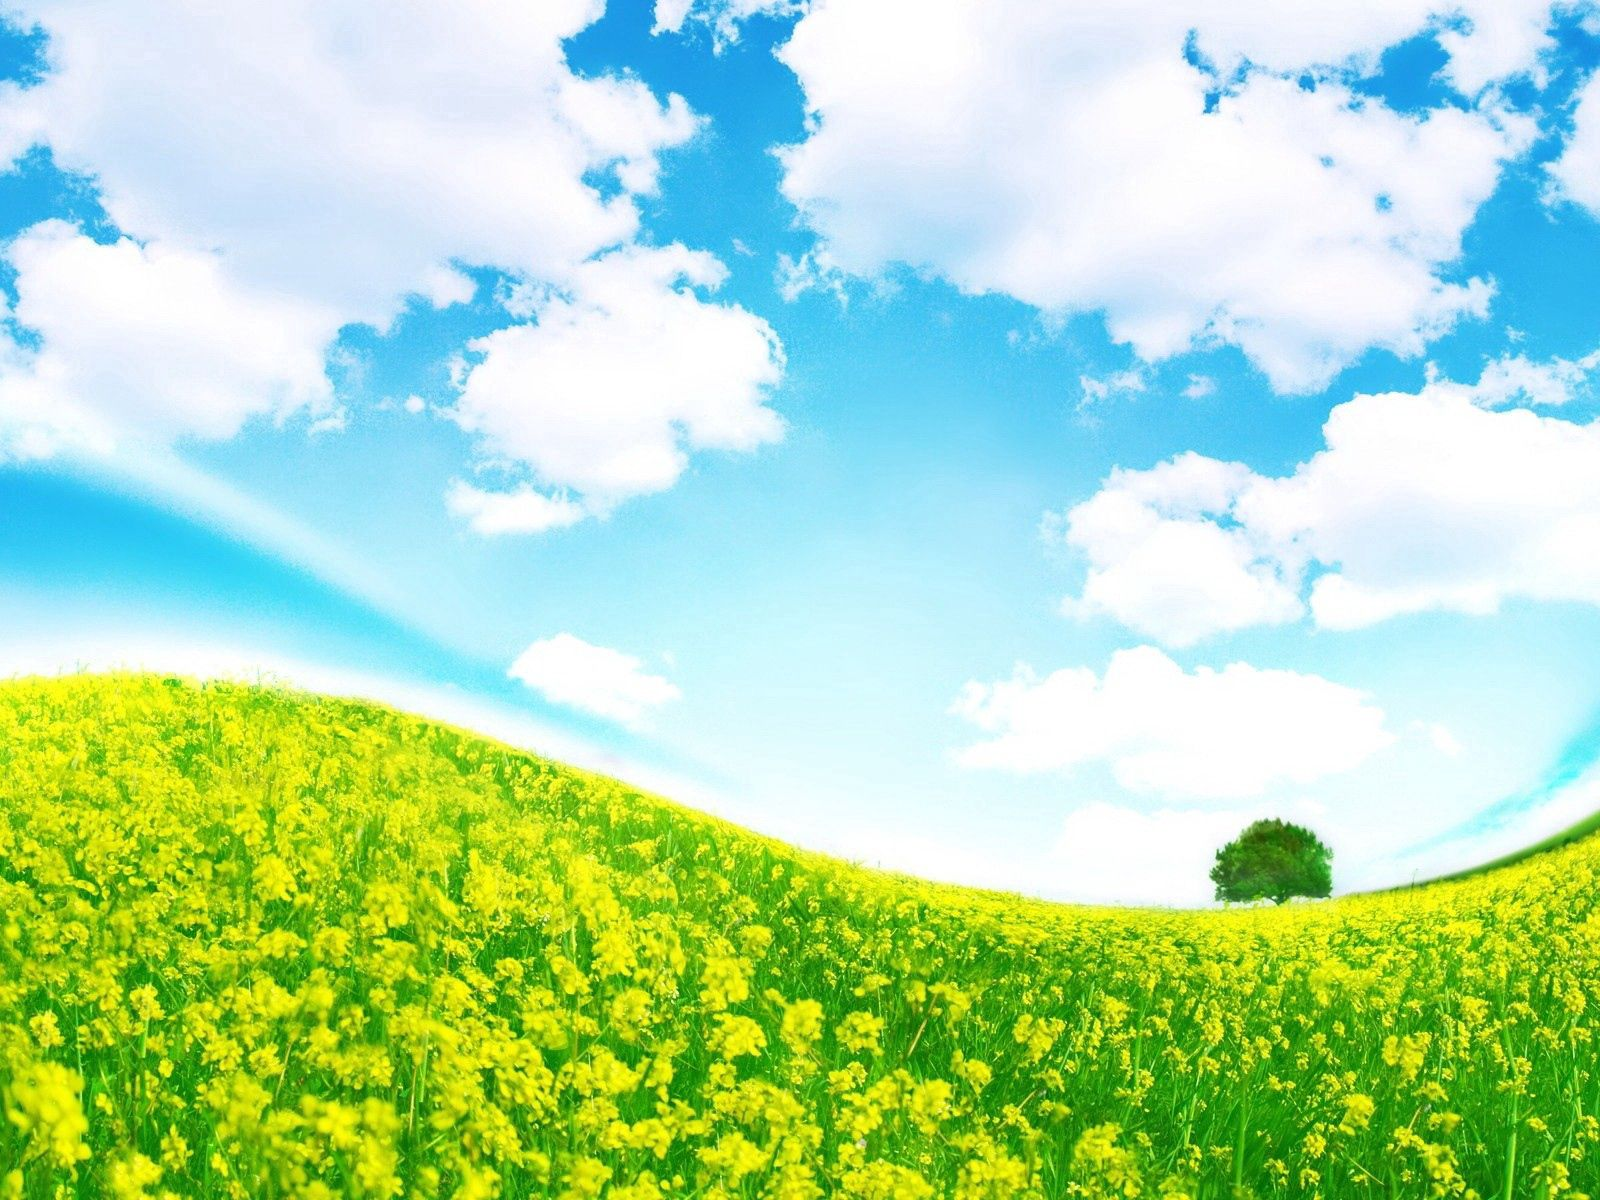 140885 download wallpaper Nature, Meadow, Slope, Wood, Tree, Colors, Color, Flowers screensavers and pictures for free